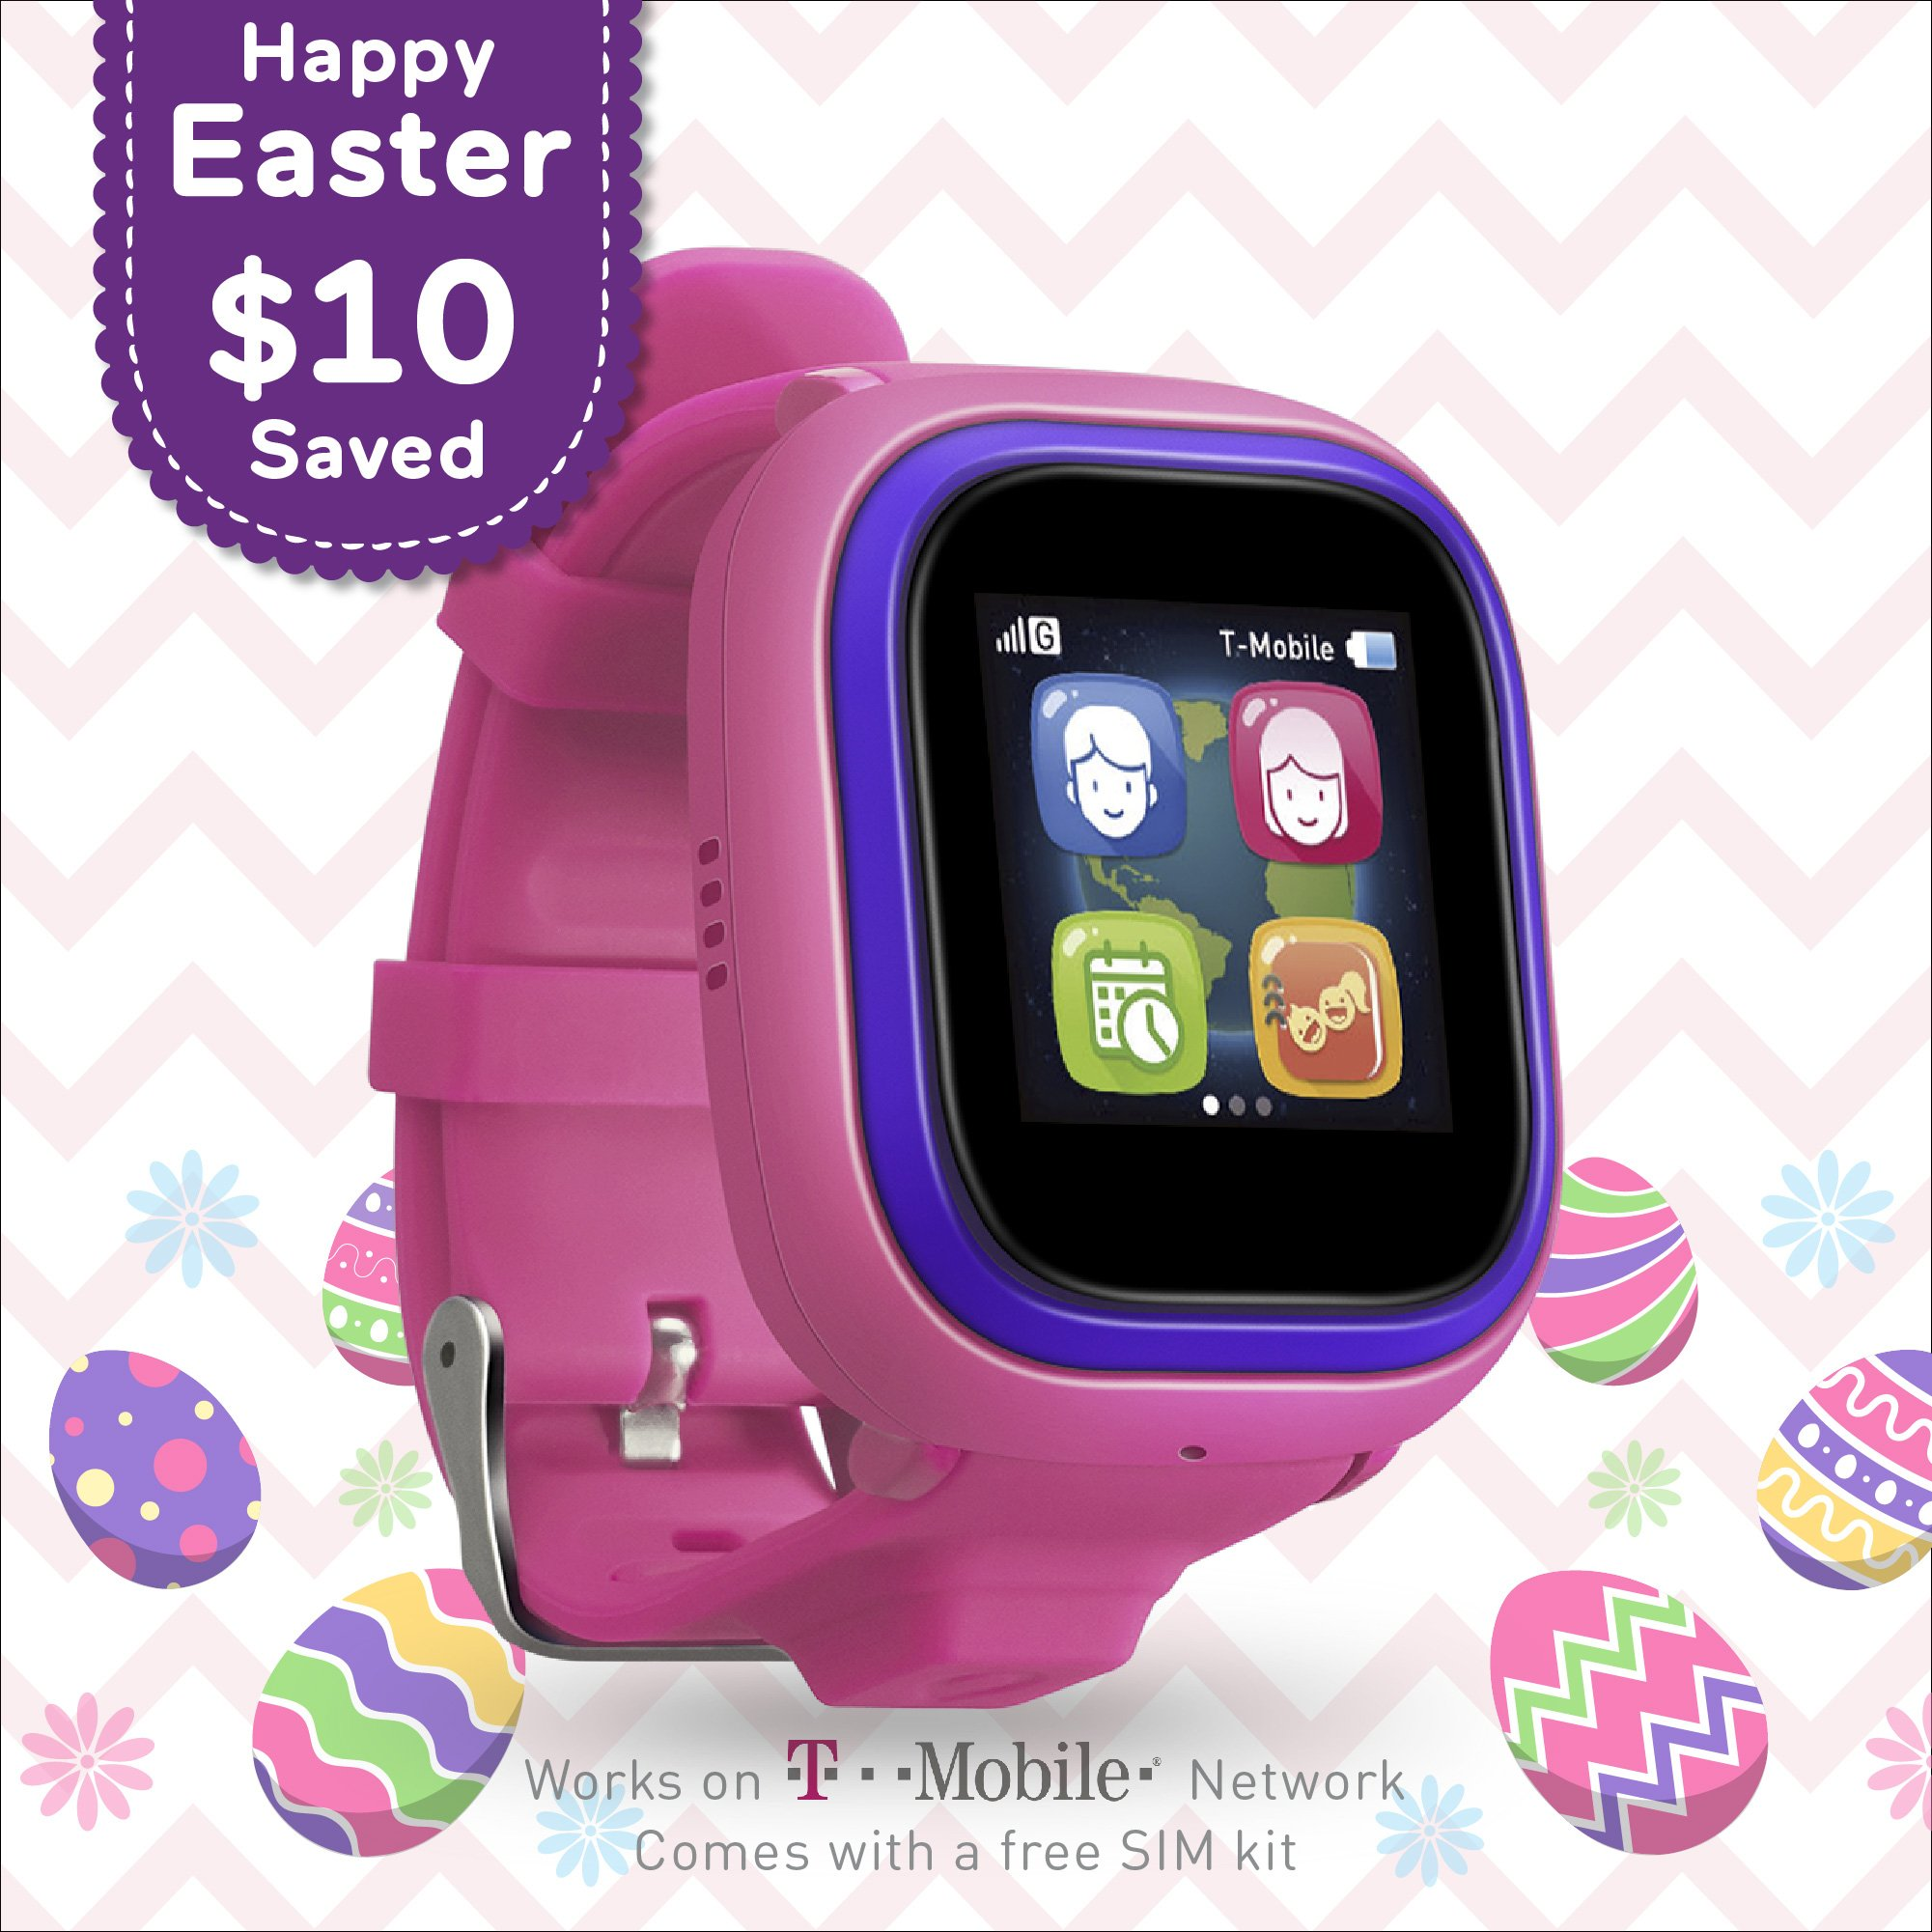 NEW TickTalk 2.0 Touch Screen Kids Smart Watch, GPS Phone watch, Anti Lost GPS tracker with New App, Better Positioning Chip, Things To Do Reminder, Phone/Messaging (SIM CARD INCLUDED) (Pink)